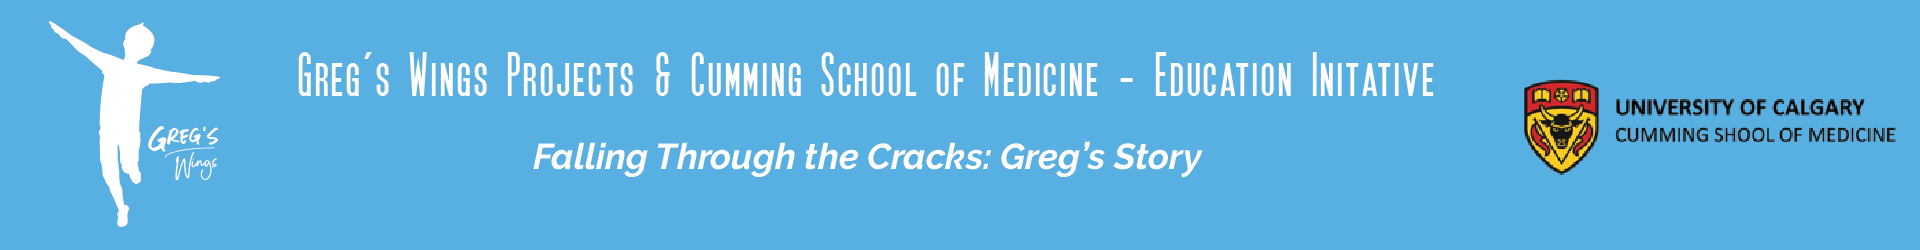 Greg's Wings Projects & Cumming School of Medicine - The Education Initiative